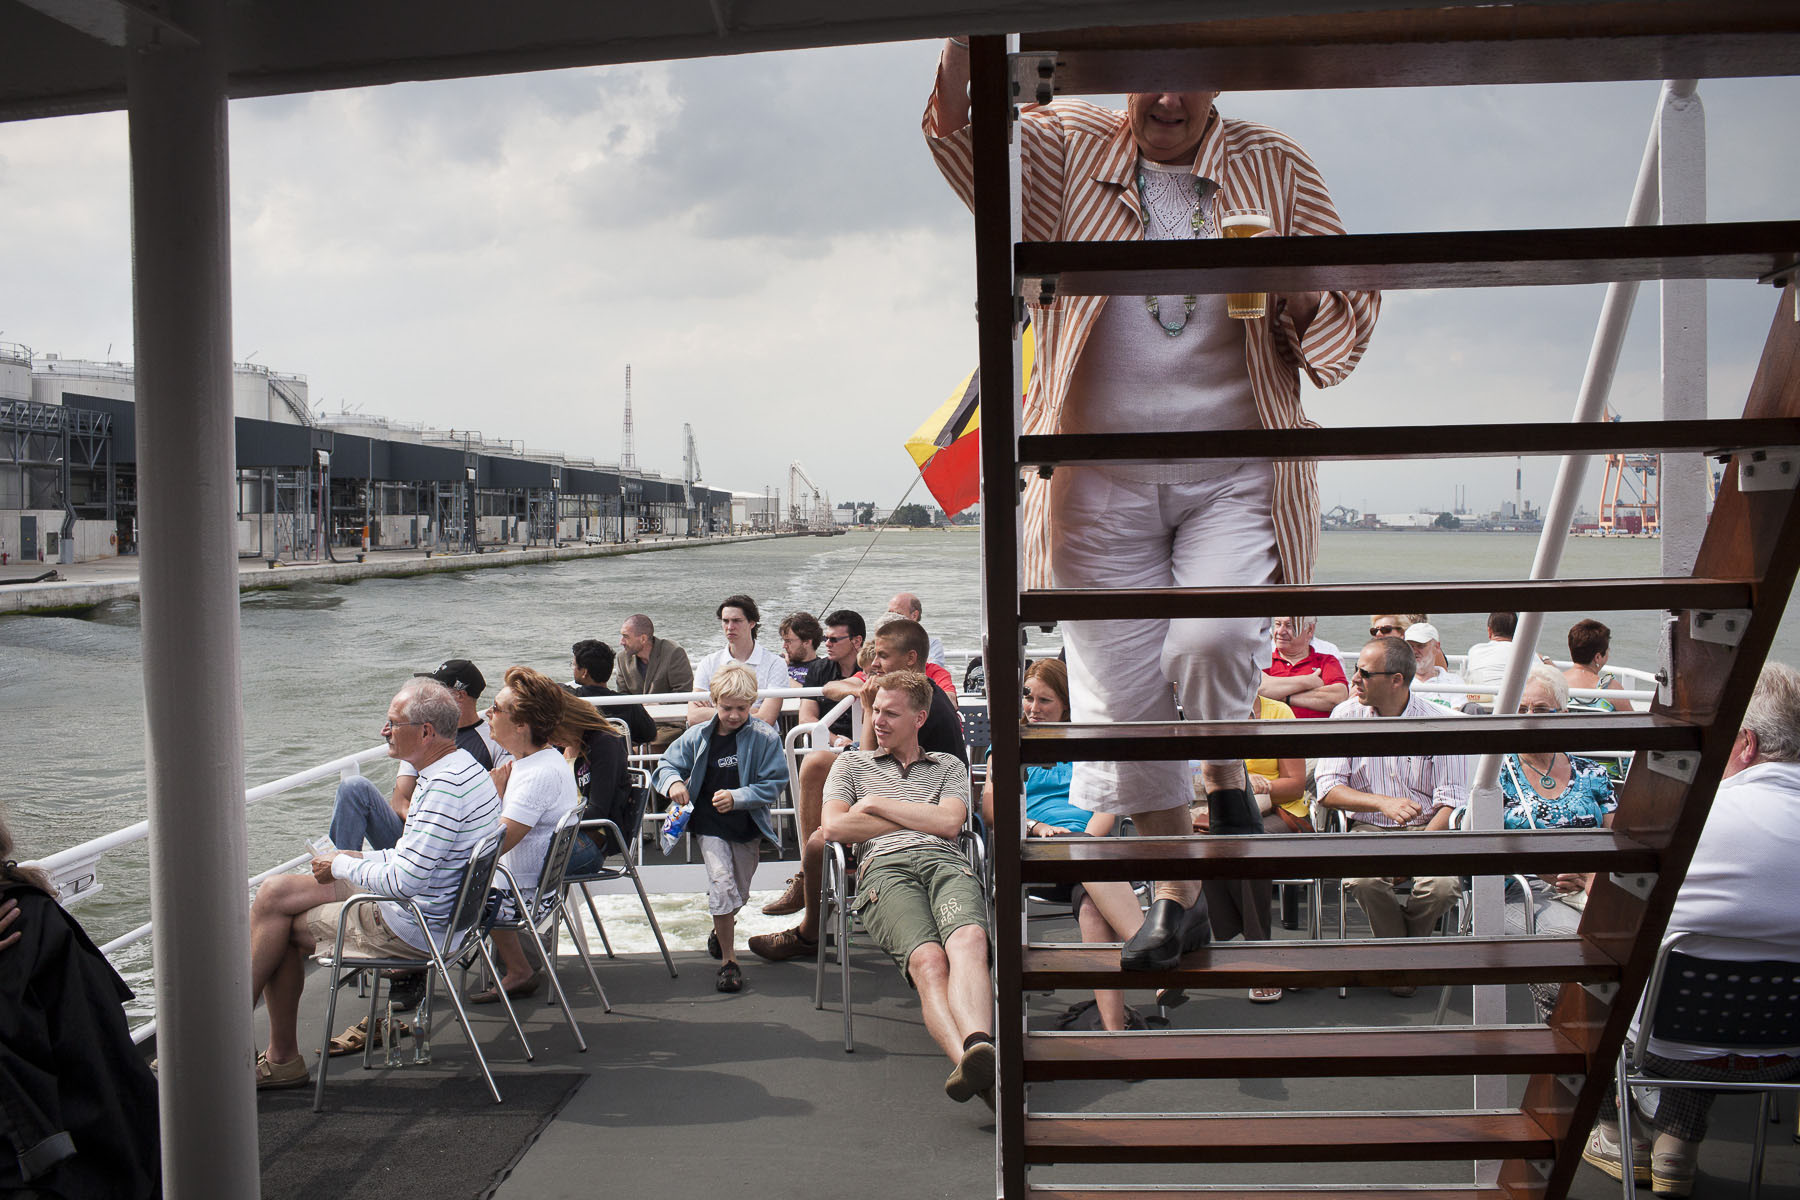 On the Scheldt river aboard the river boat The Flandria in July 2010